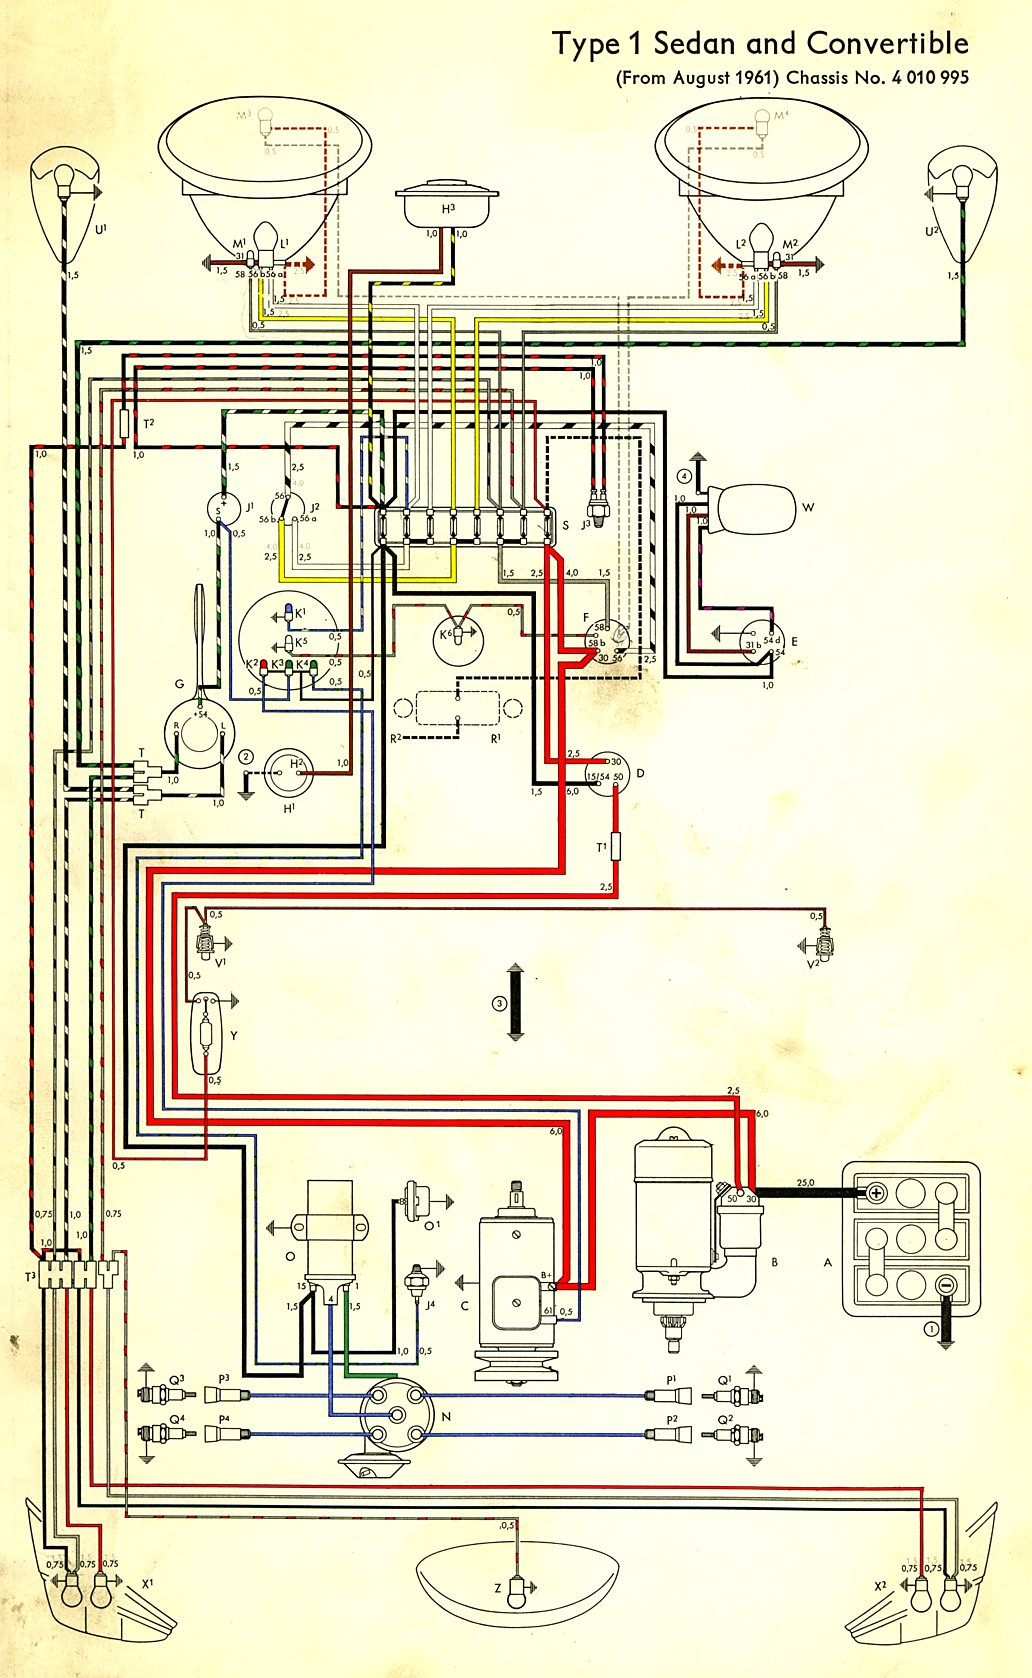 1977 vw beetle parts diagrams with 1967 Beetle Wiring Diagram on 1978 Chevy Wiper Motor Wiring as well 72 Torino Wiring Diagram as well 1976 Corvette Engine Diagram additionally Diagram view additionally Wiringt2.